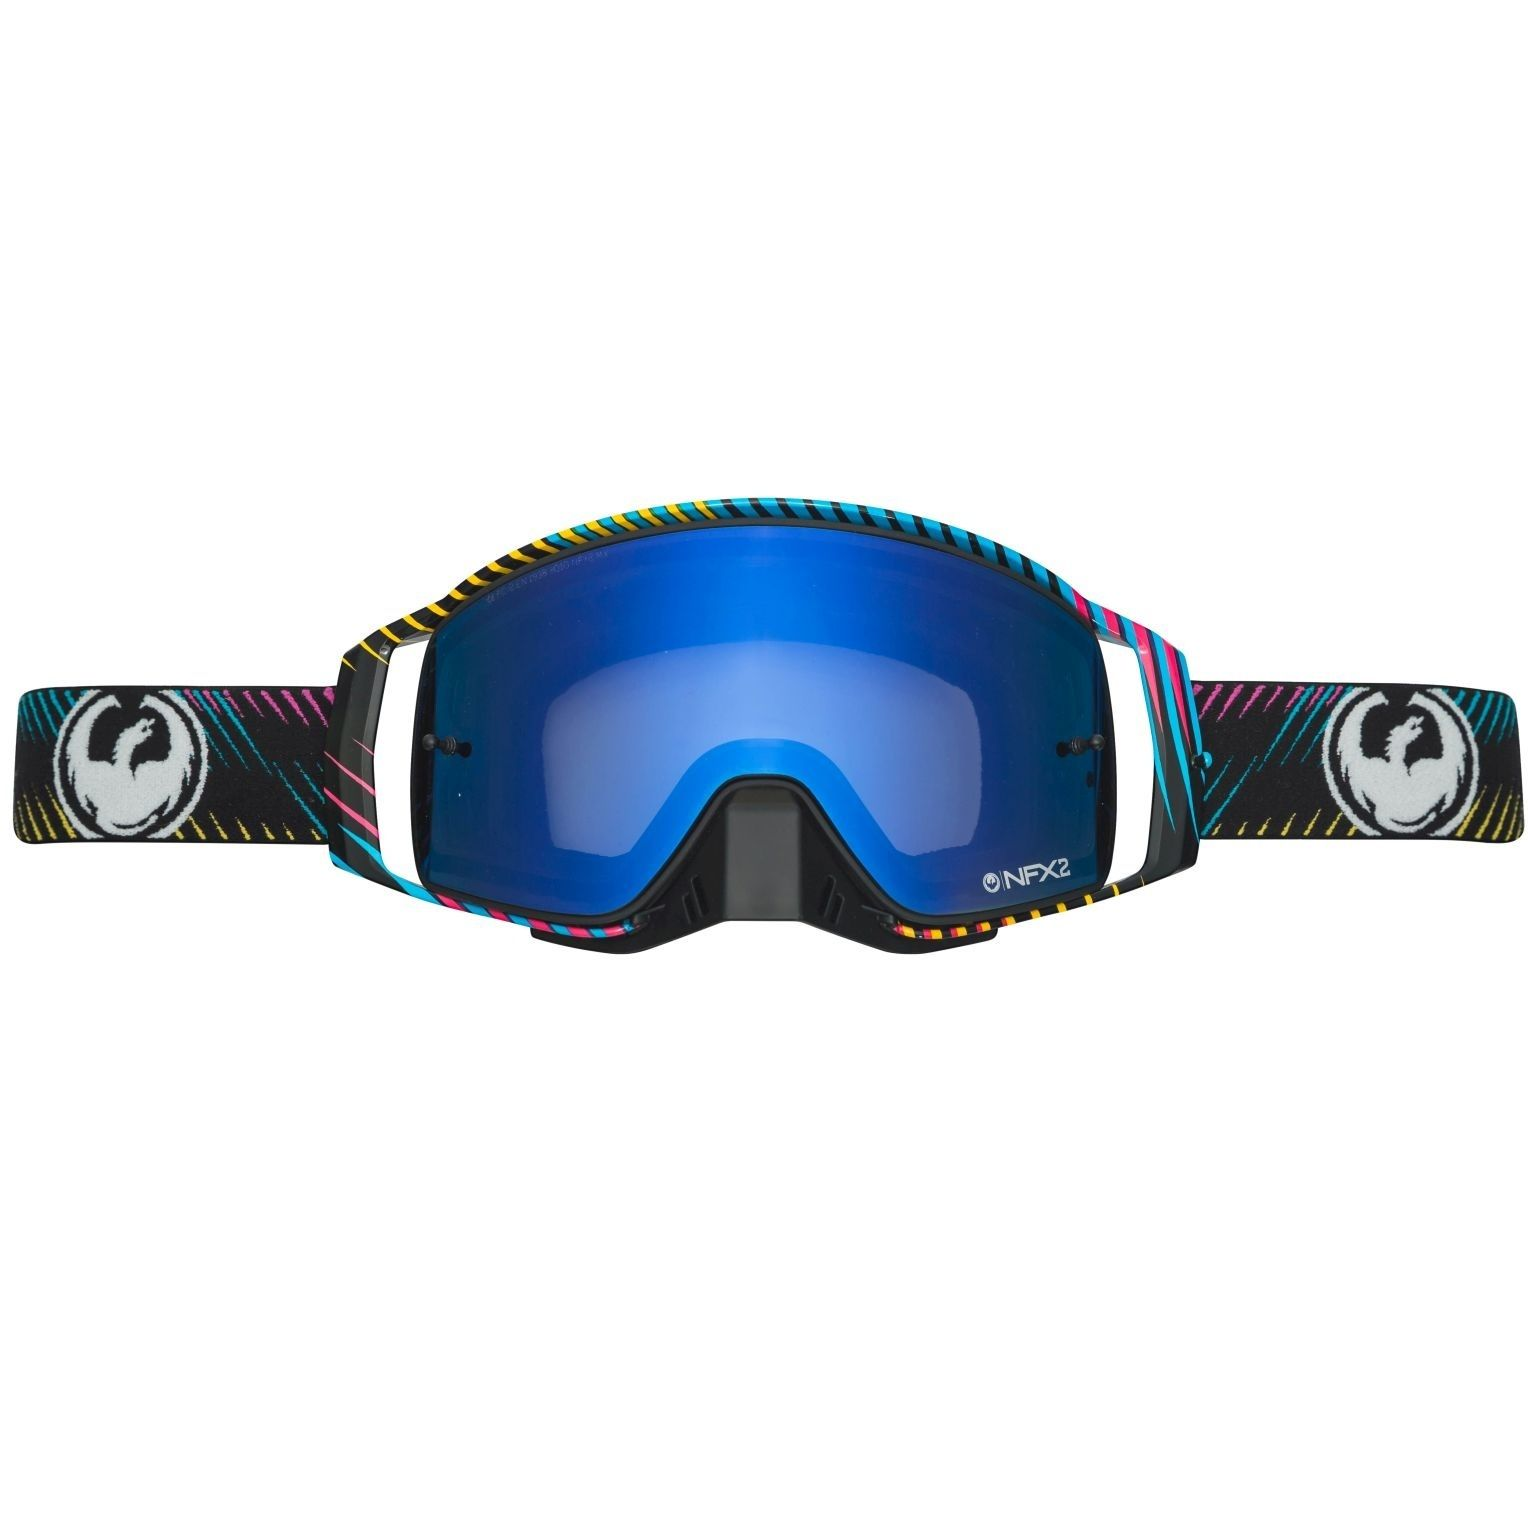 Dragon NFX2 Blur Injected Blue Steel Goggles (With Images